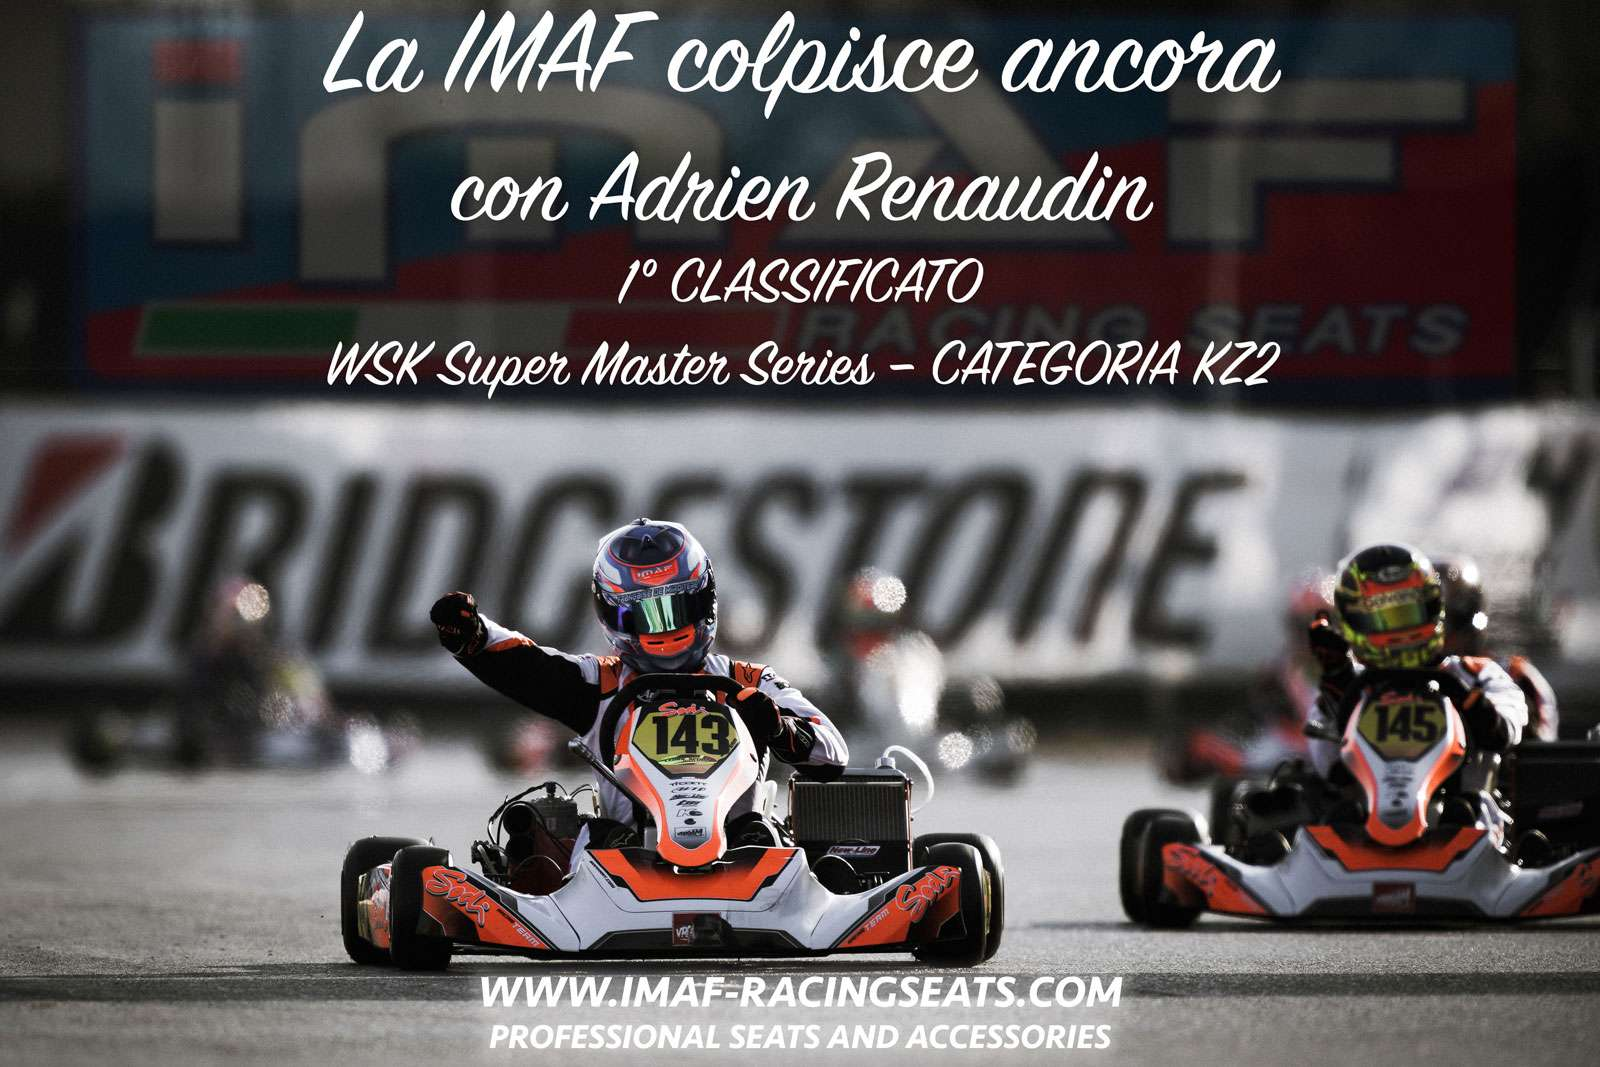 The IMAF strikes again with Adrien Renaudin